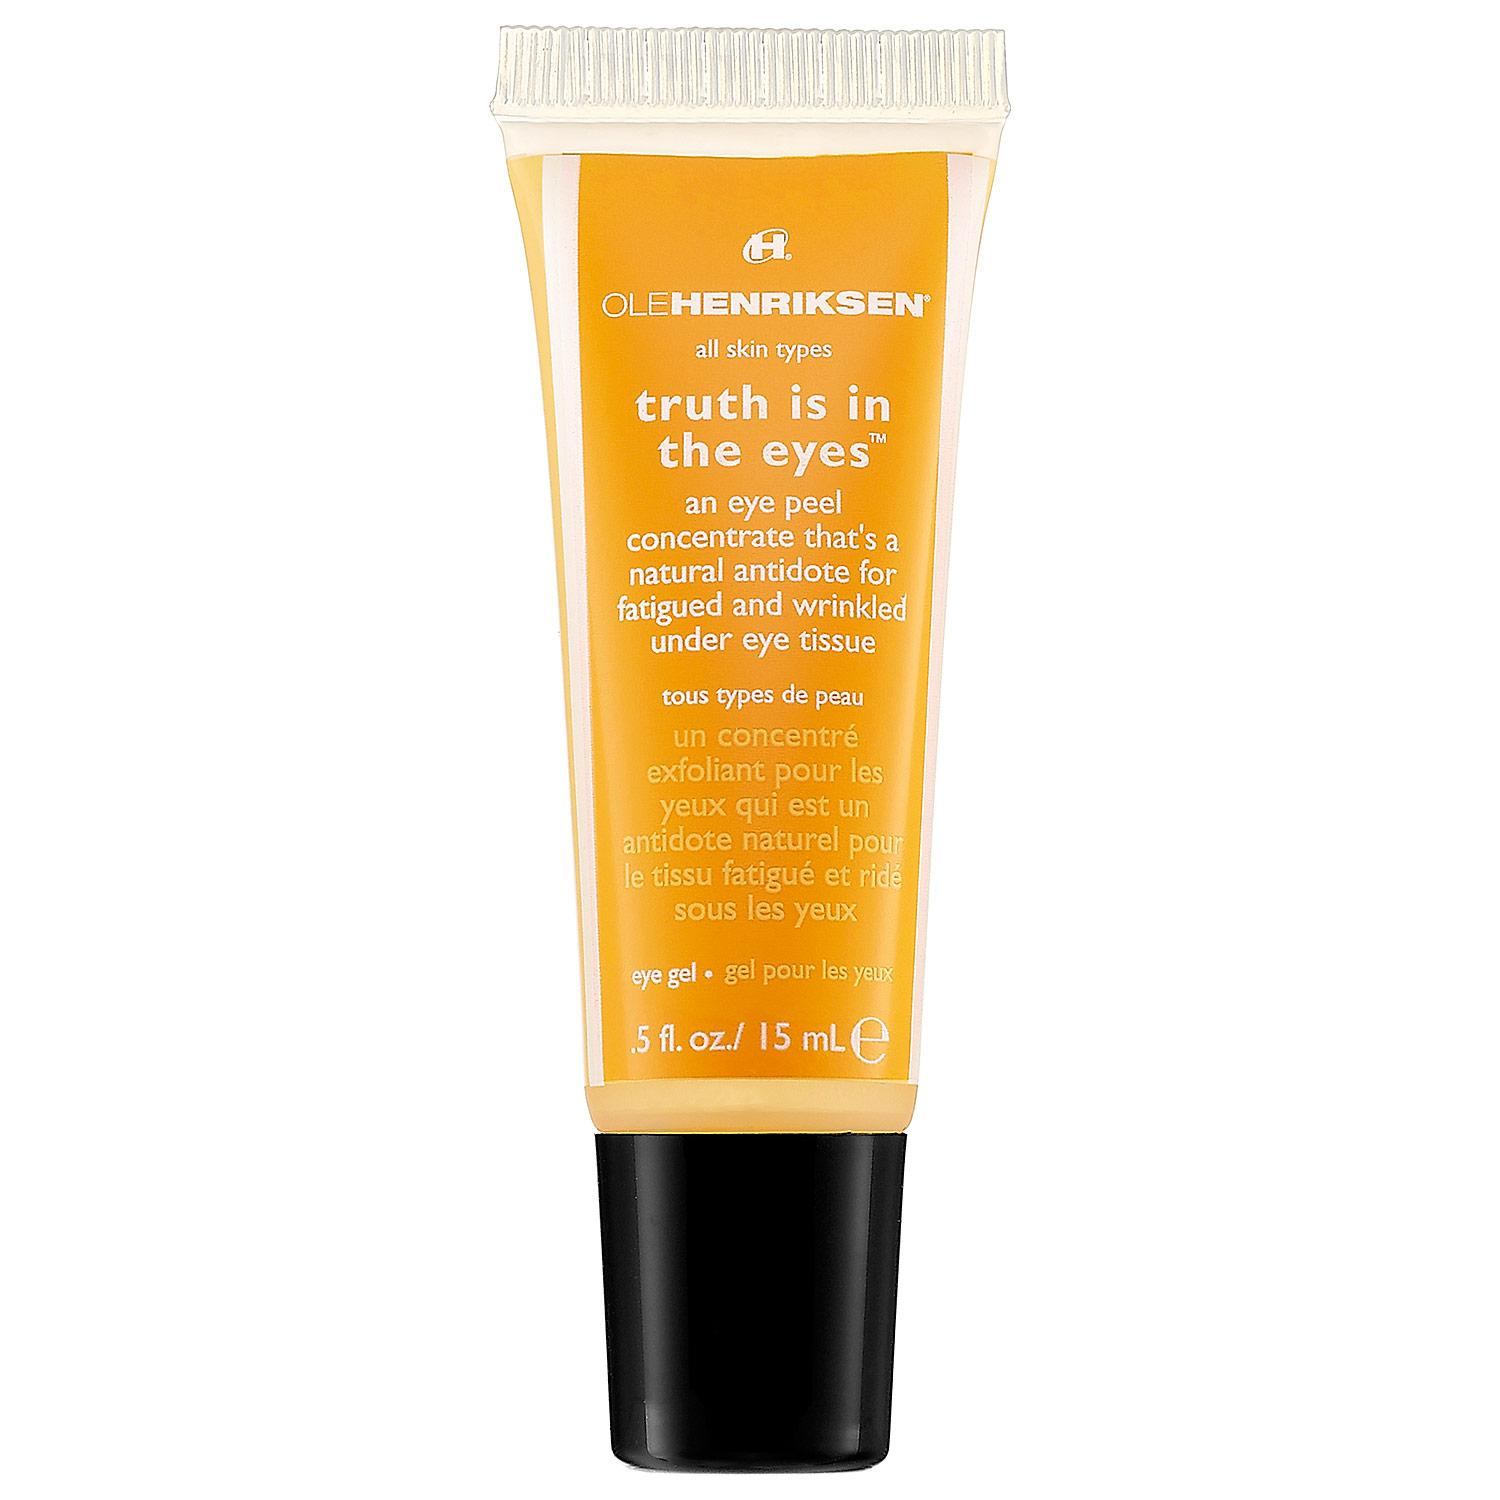 Truth Is In The Eyes™ Vitamin C Peel Concentrate